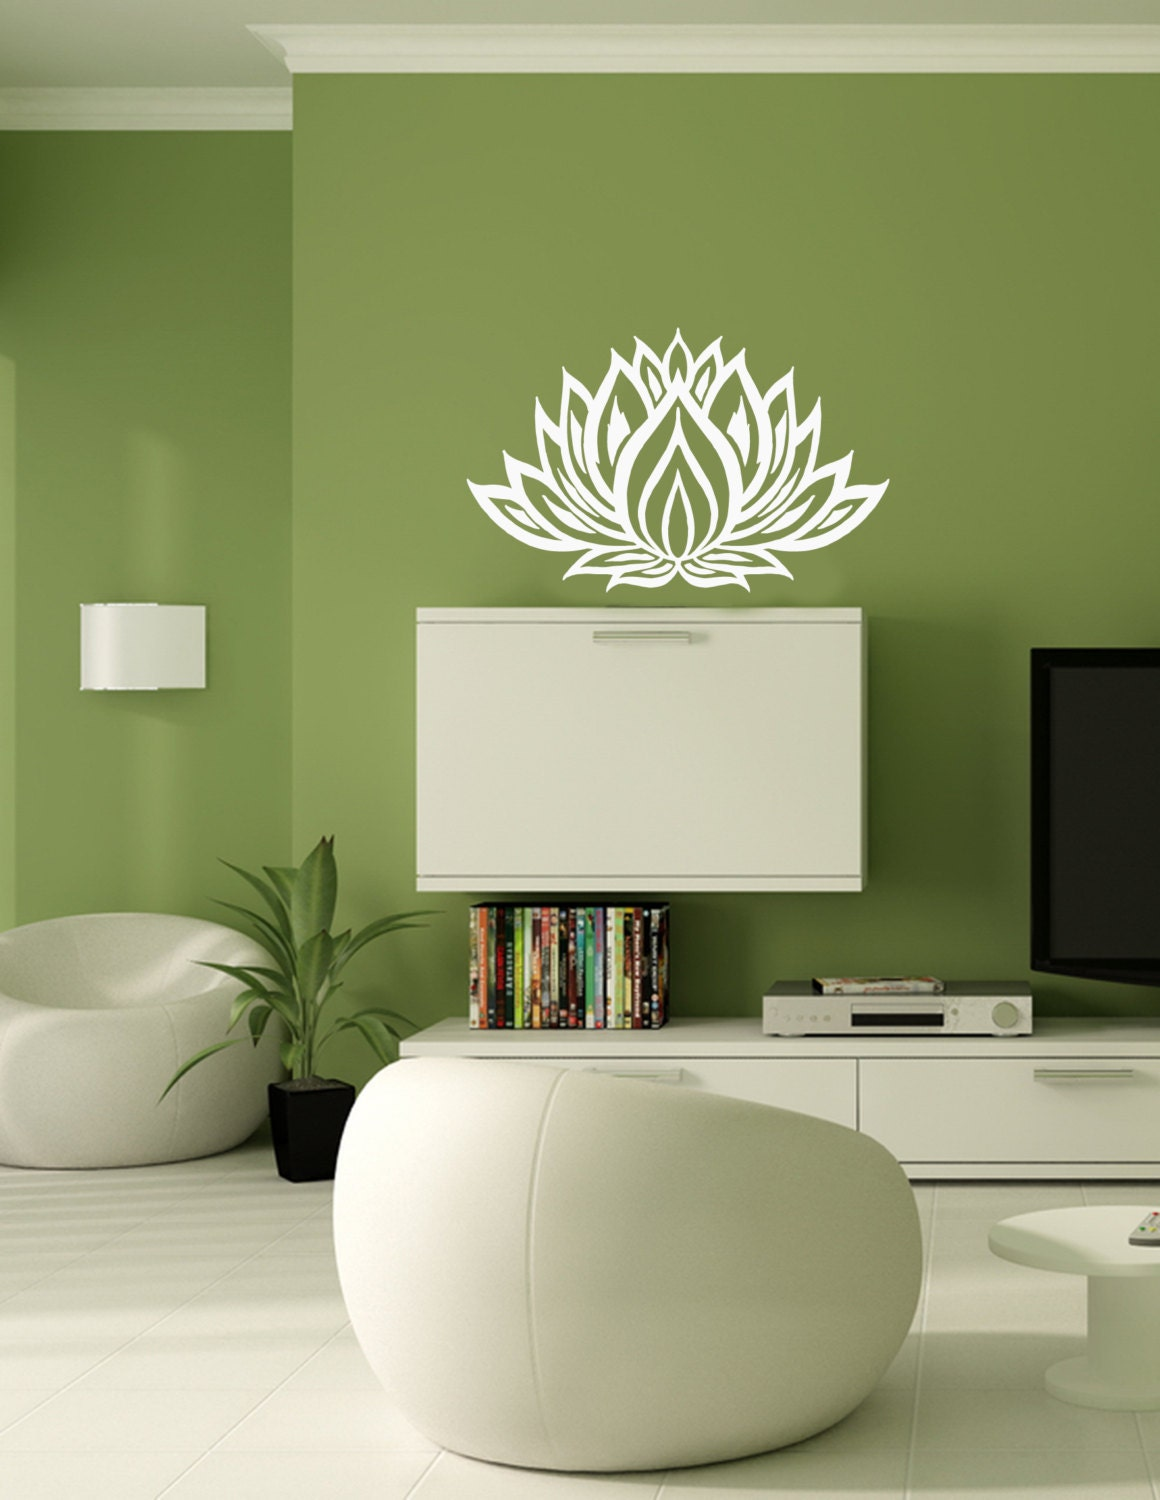 Lotus Flower Yoga Wall Decals Wall Vinyl Decal By Bestdecals